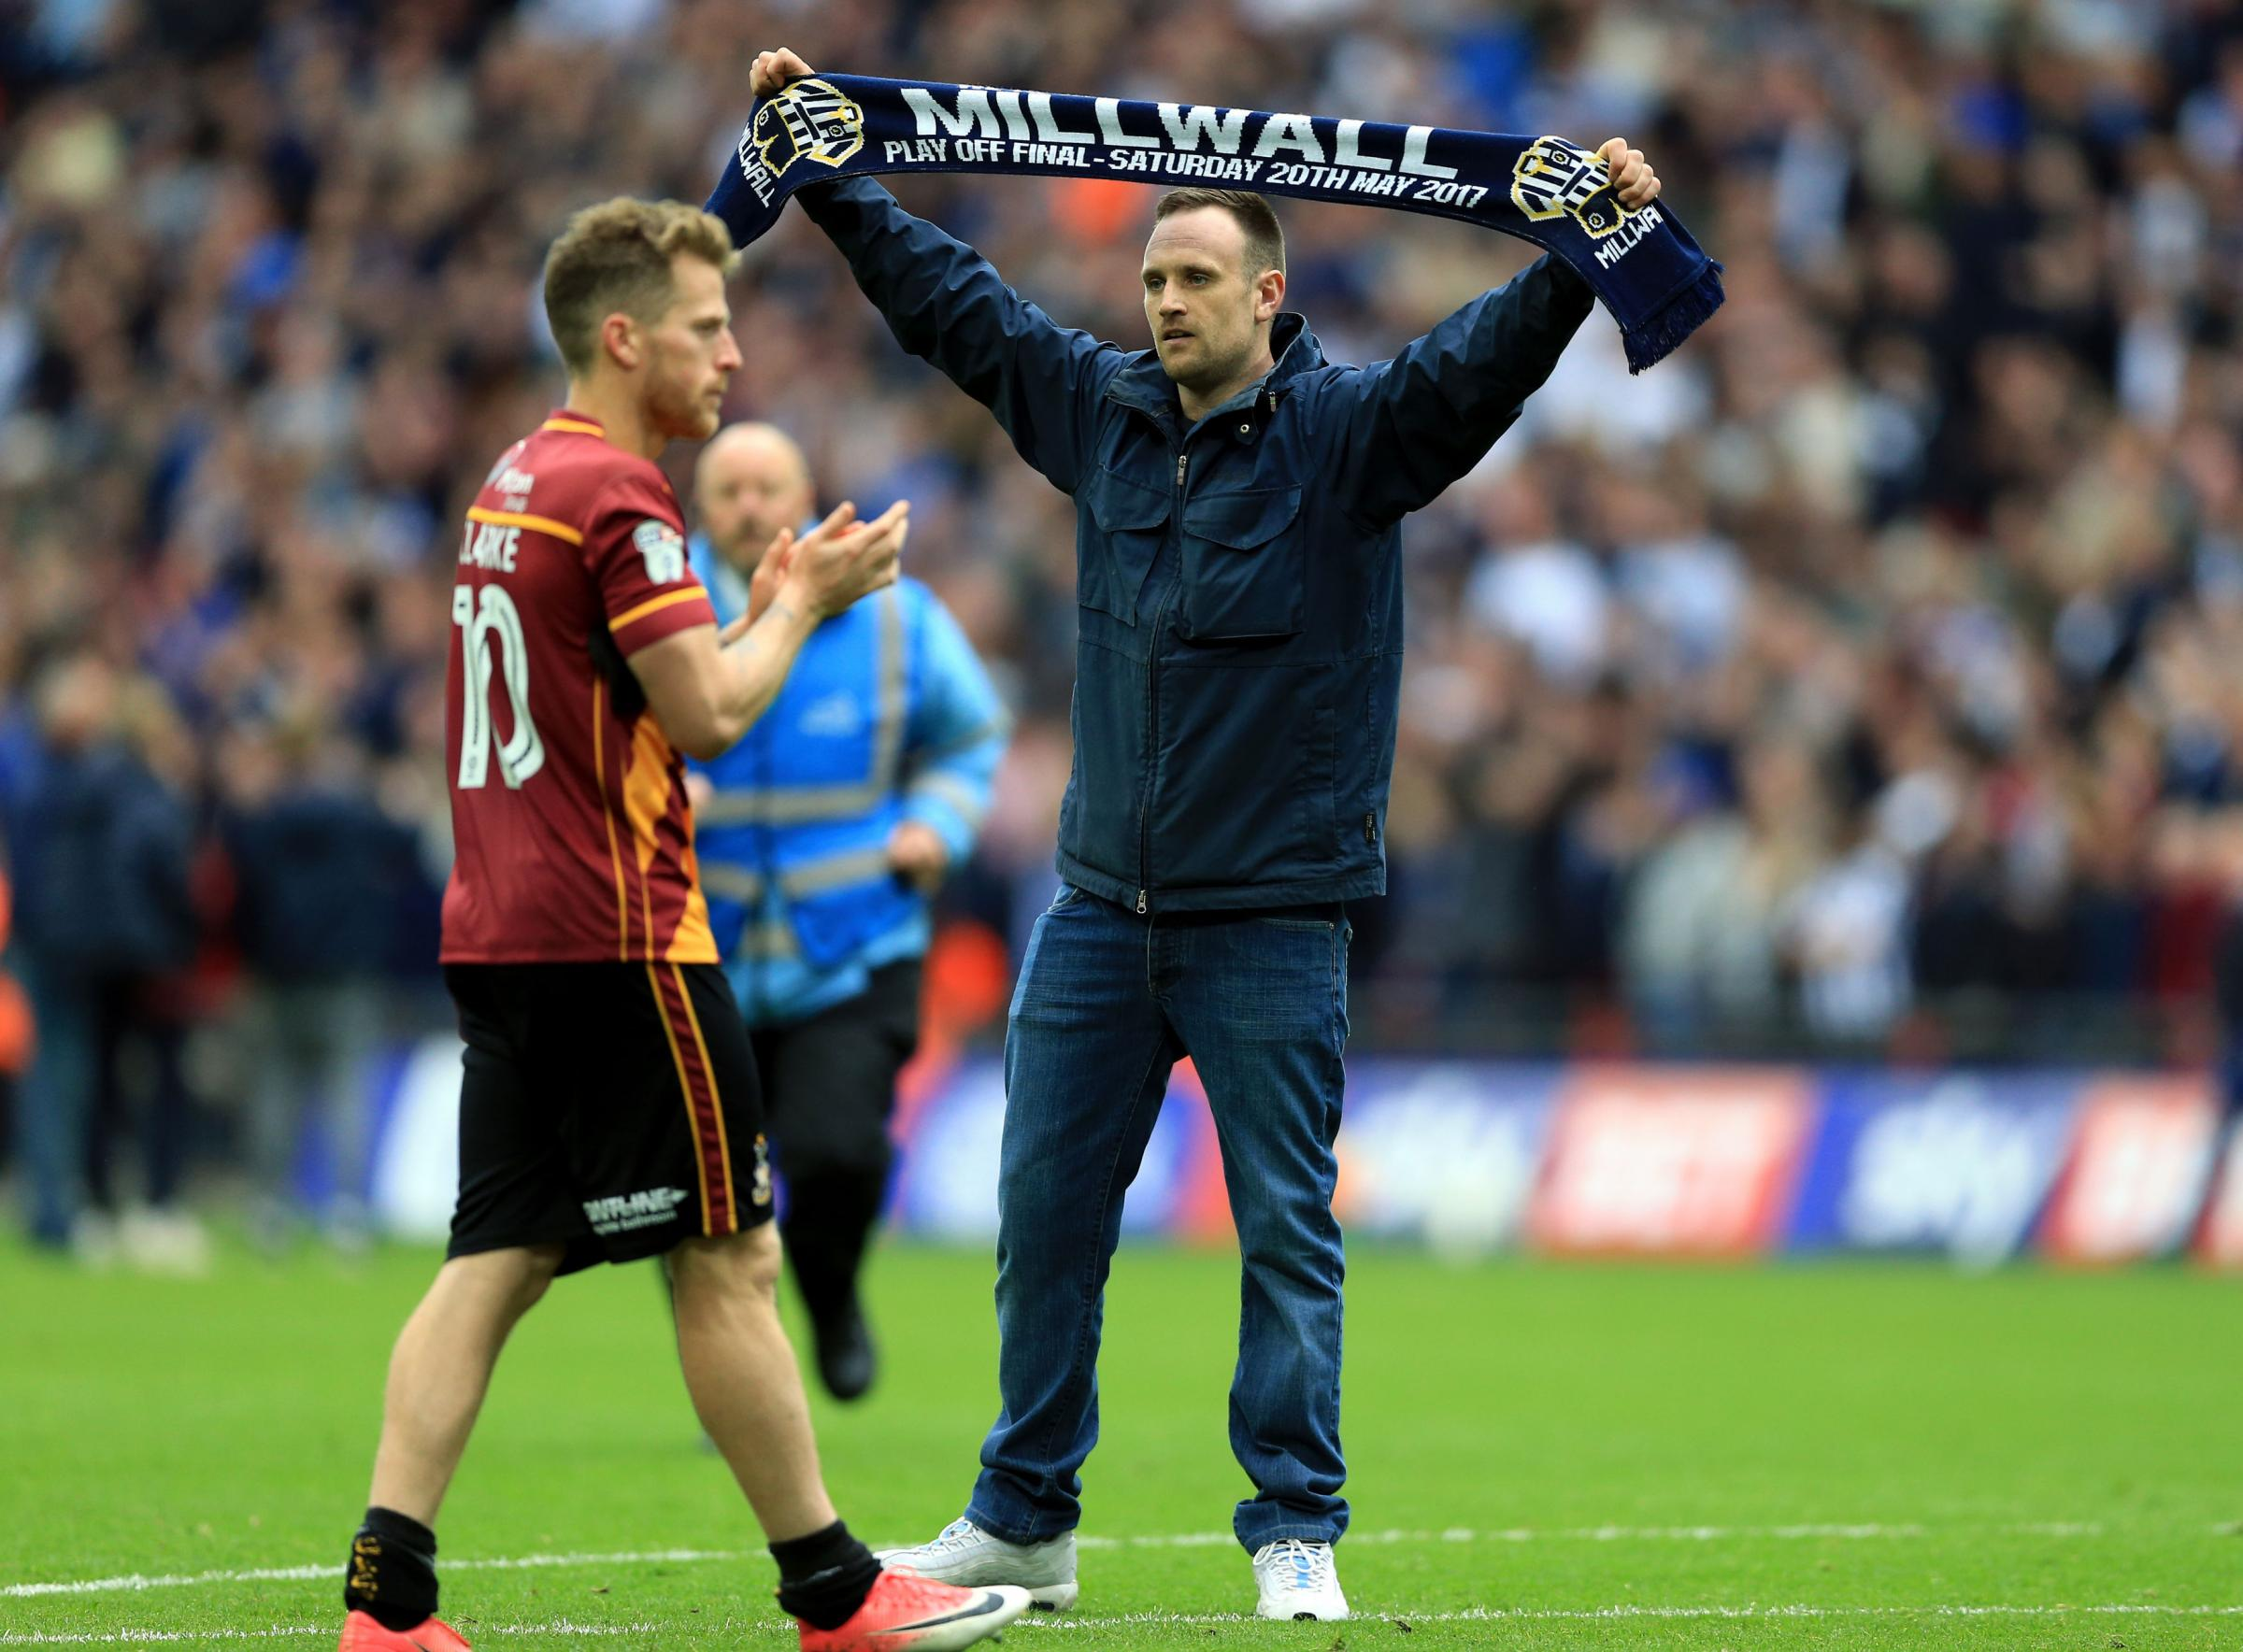 Bradford City's Billy Clarke confronted by a Millwall fans on the pitch after the League One play-off final at Wembley